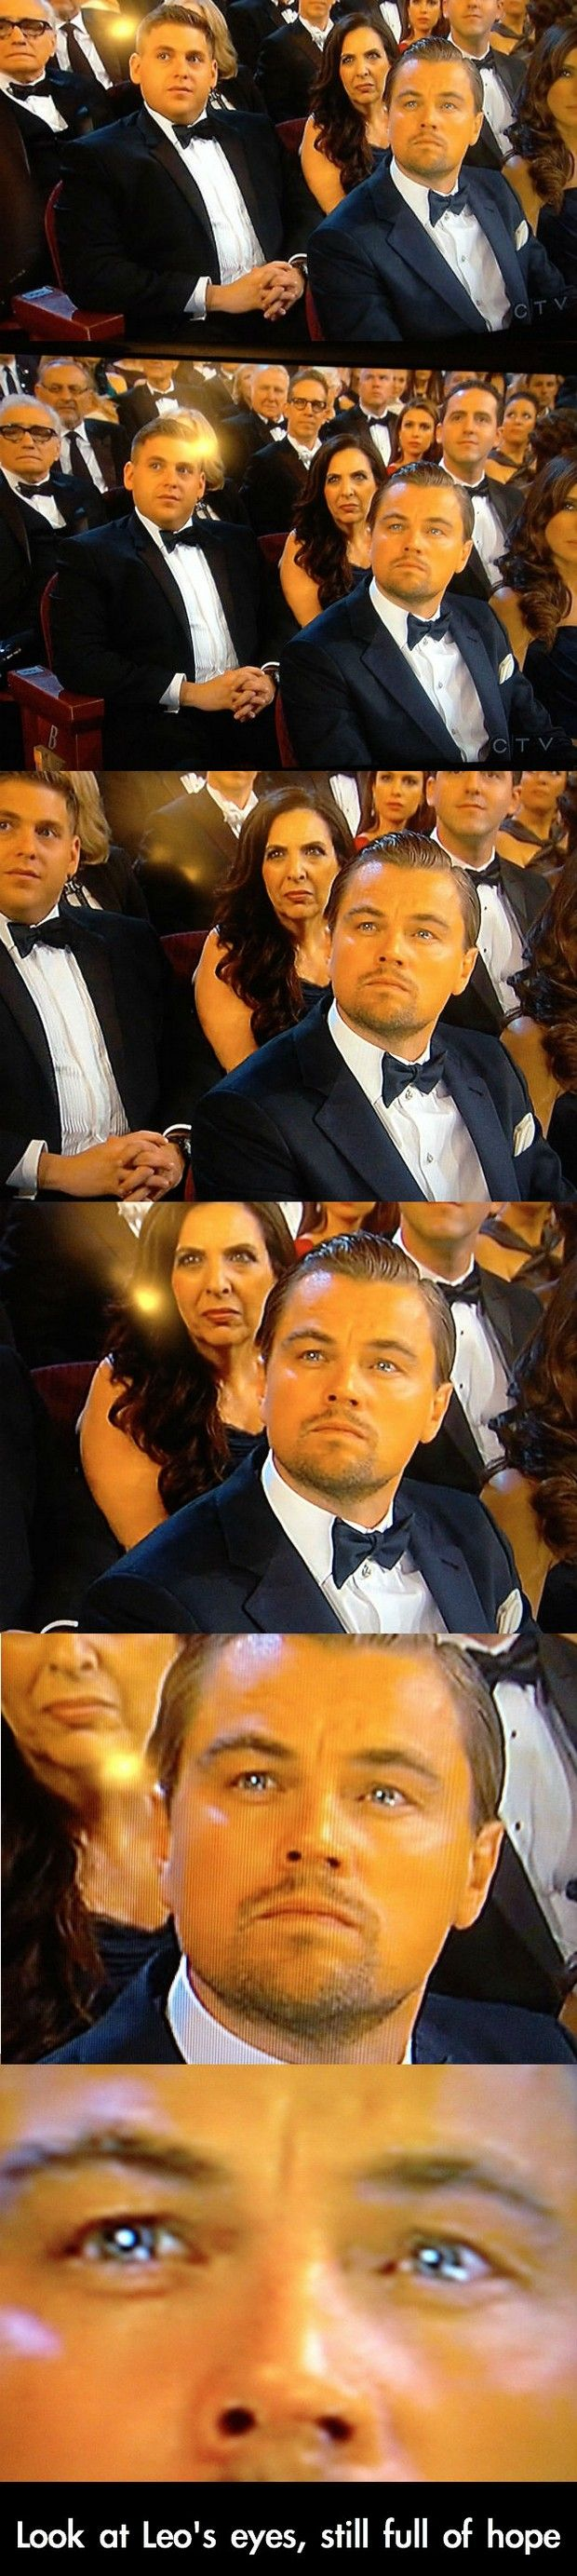 Awww.. Leo, I will give you your Oscar. If it's the last thing I do. the lady behind him though